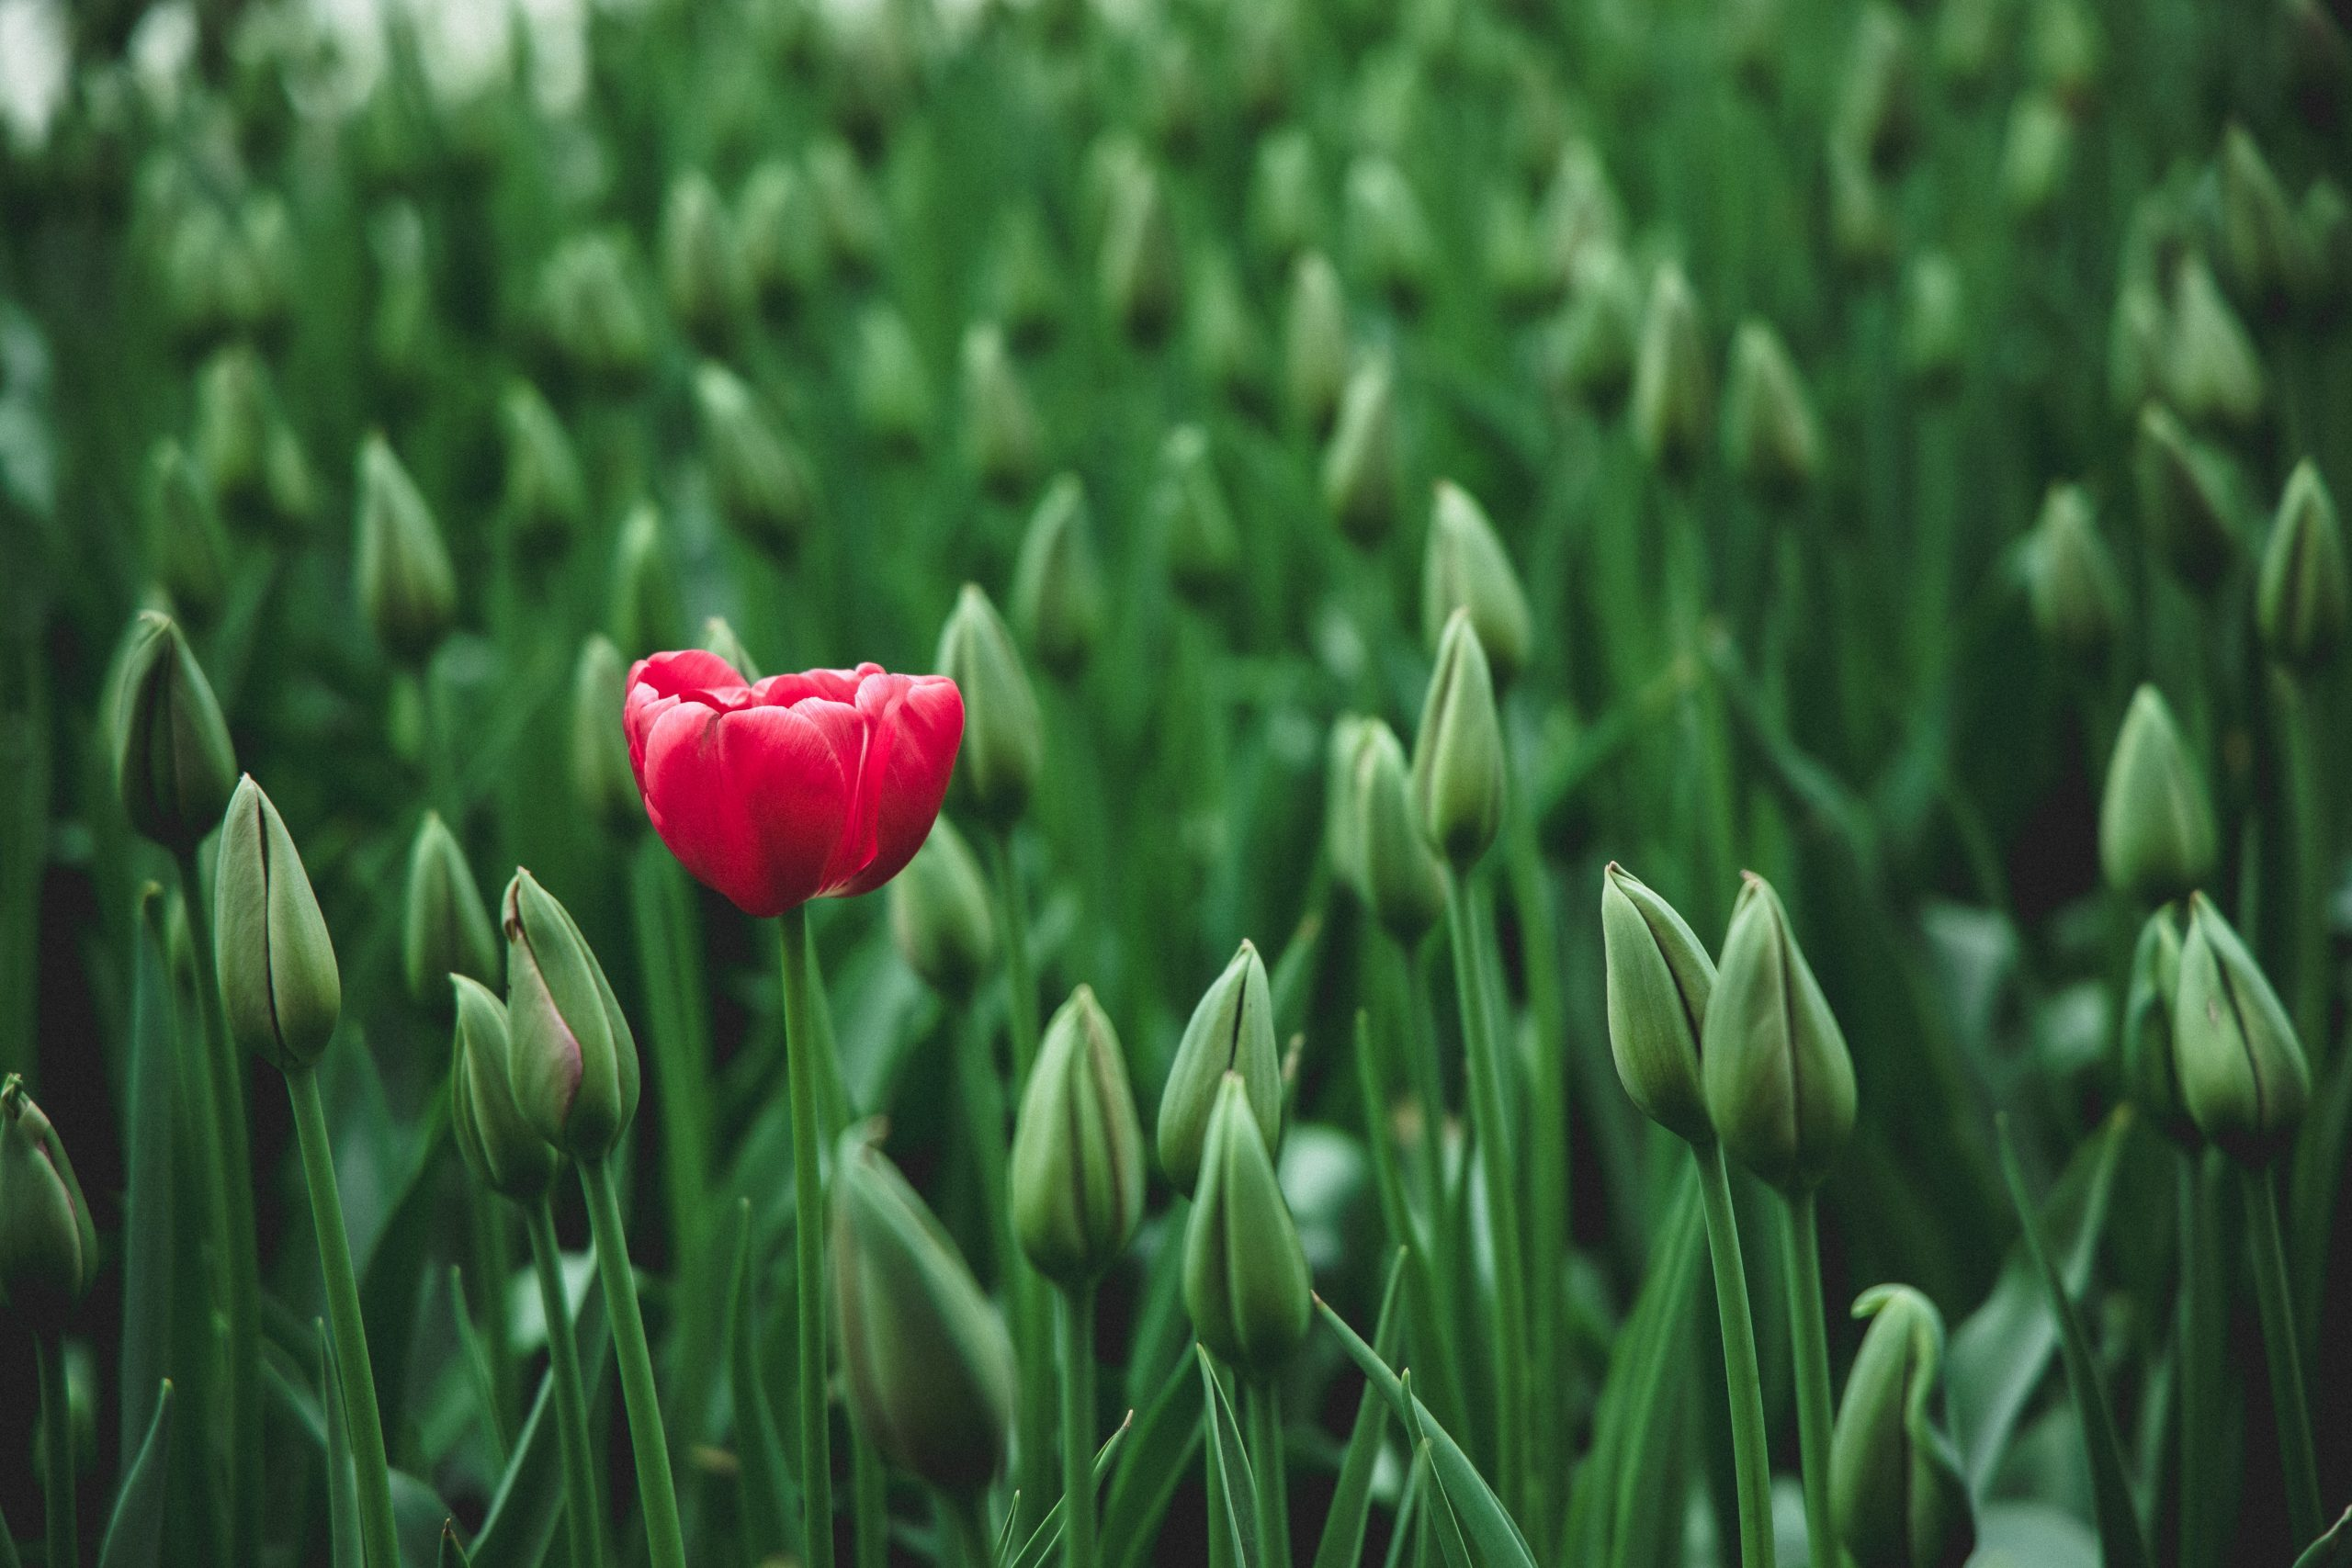 From Our Chaplain: Waiting for Spring